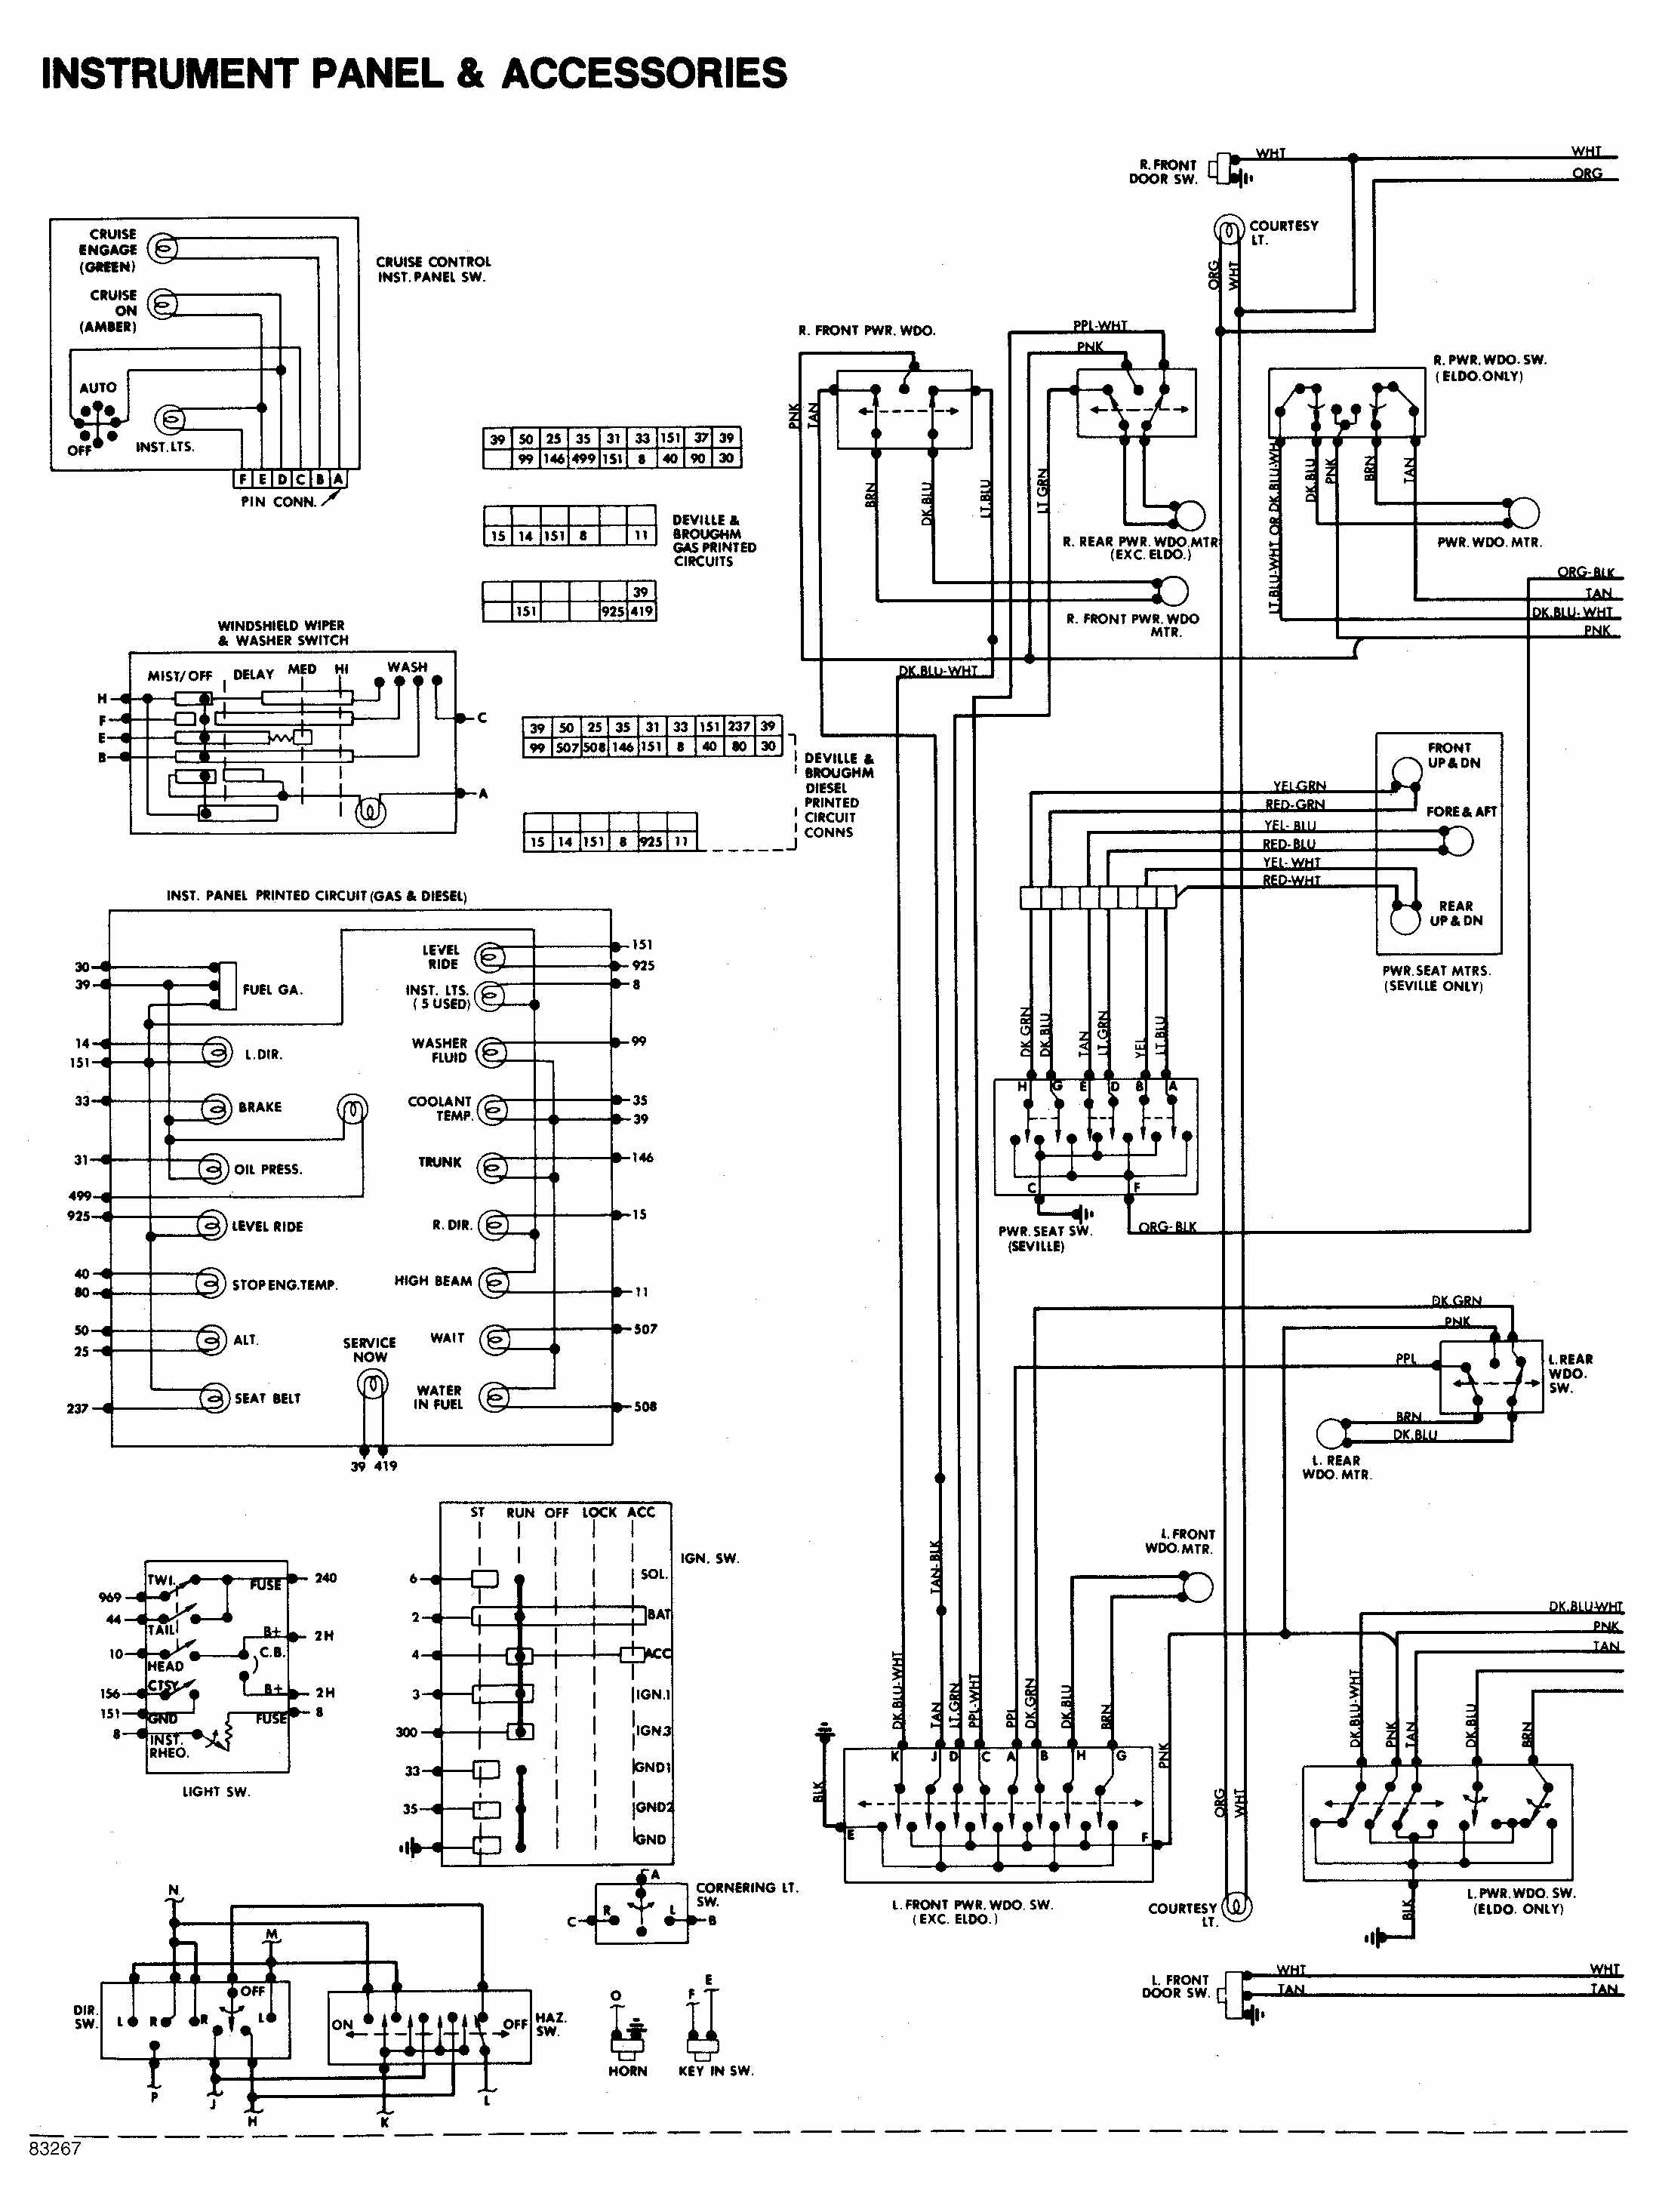 wiring a wire harness for a car stereo wiring diagrams